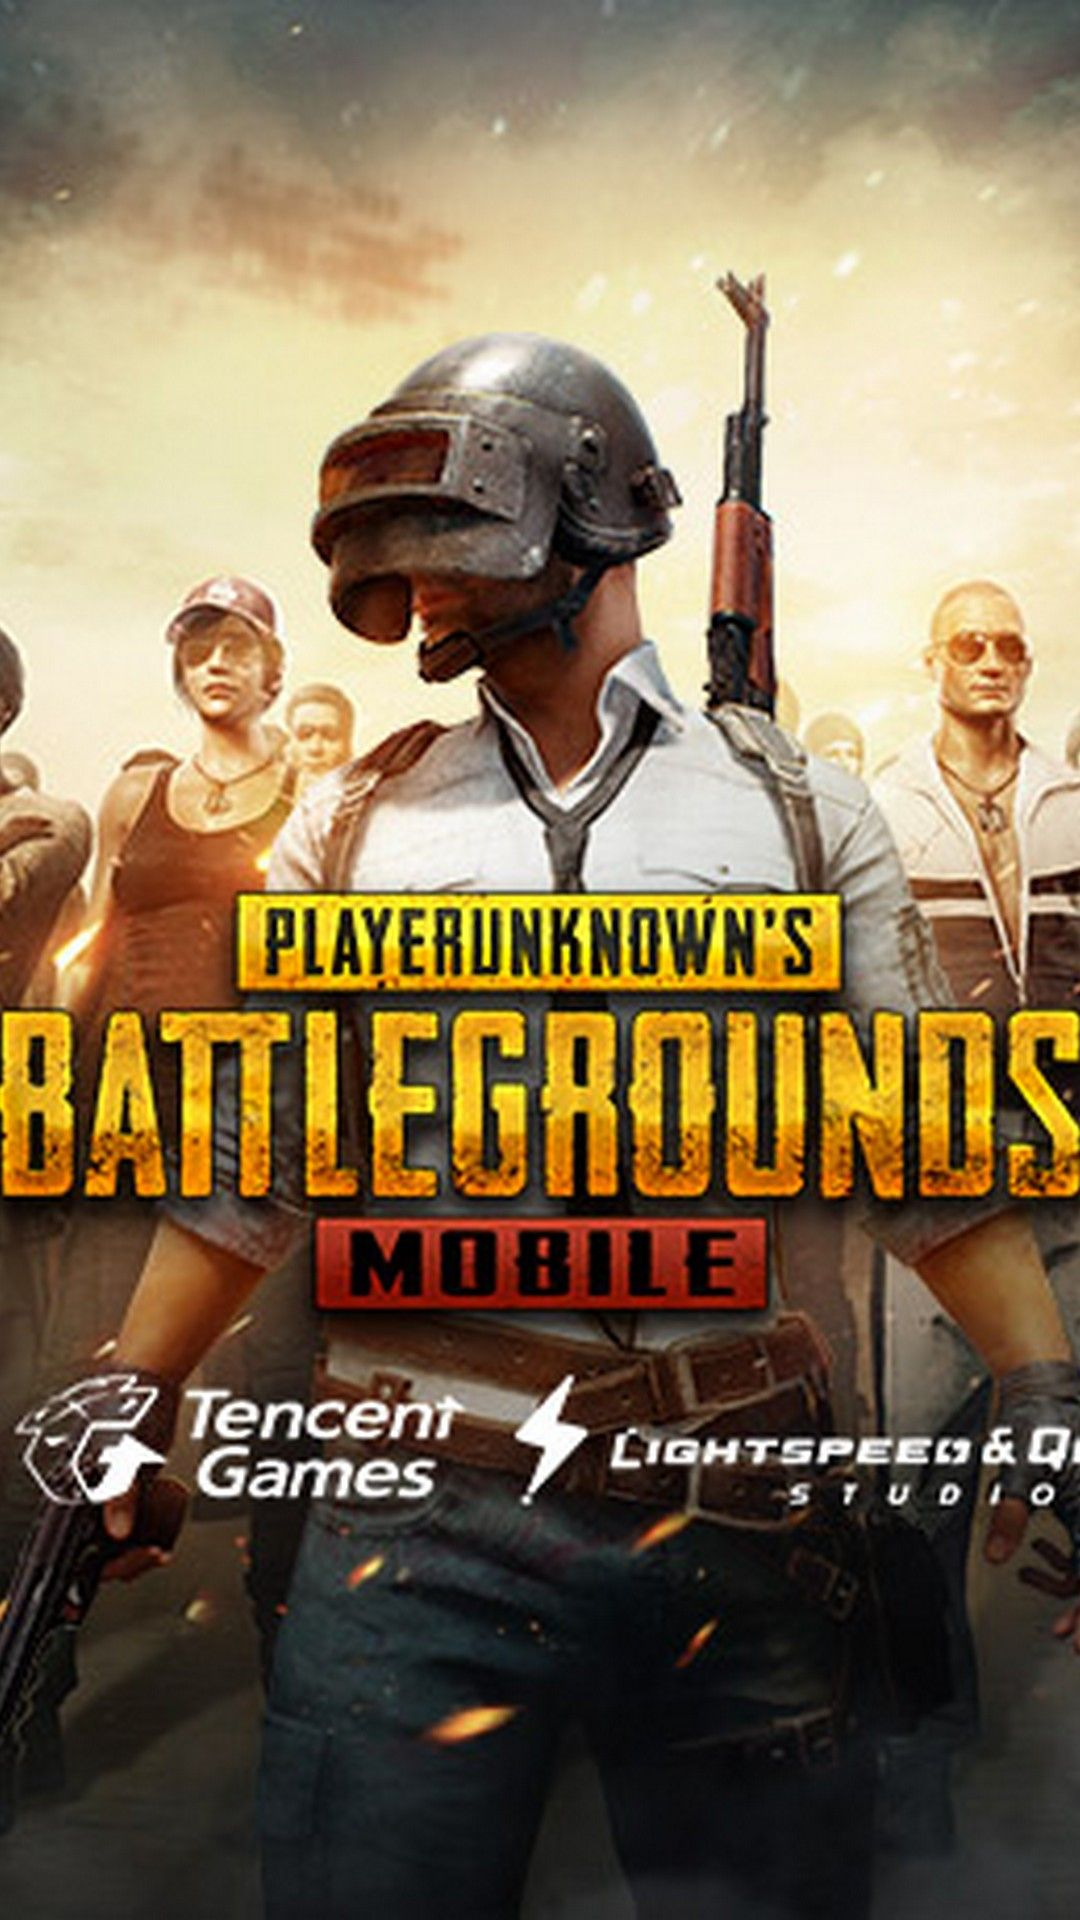 Pubg Mobile Iphone 7 Wallpaper Iphone 7 Wallpapers Hd Wallpaper